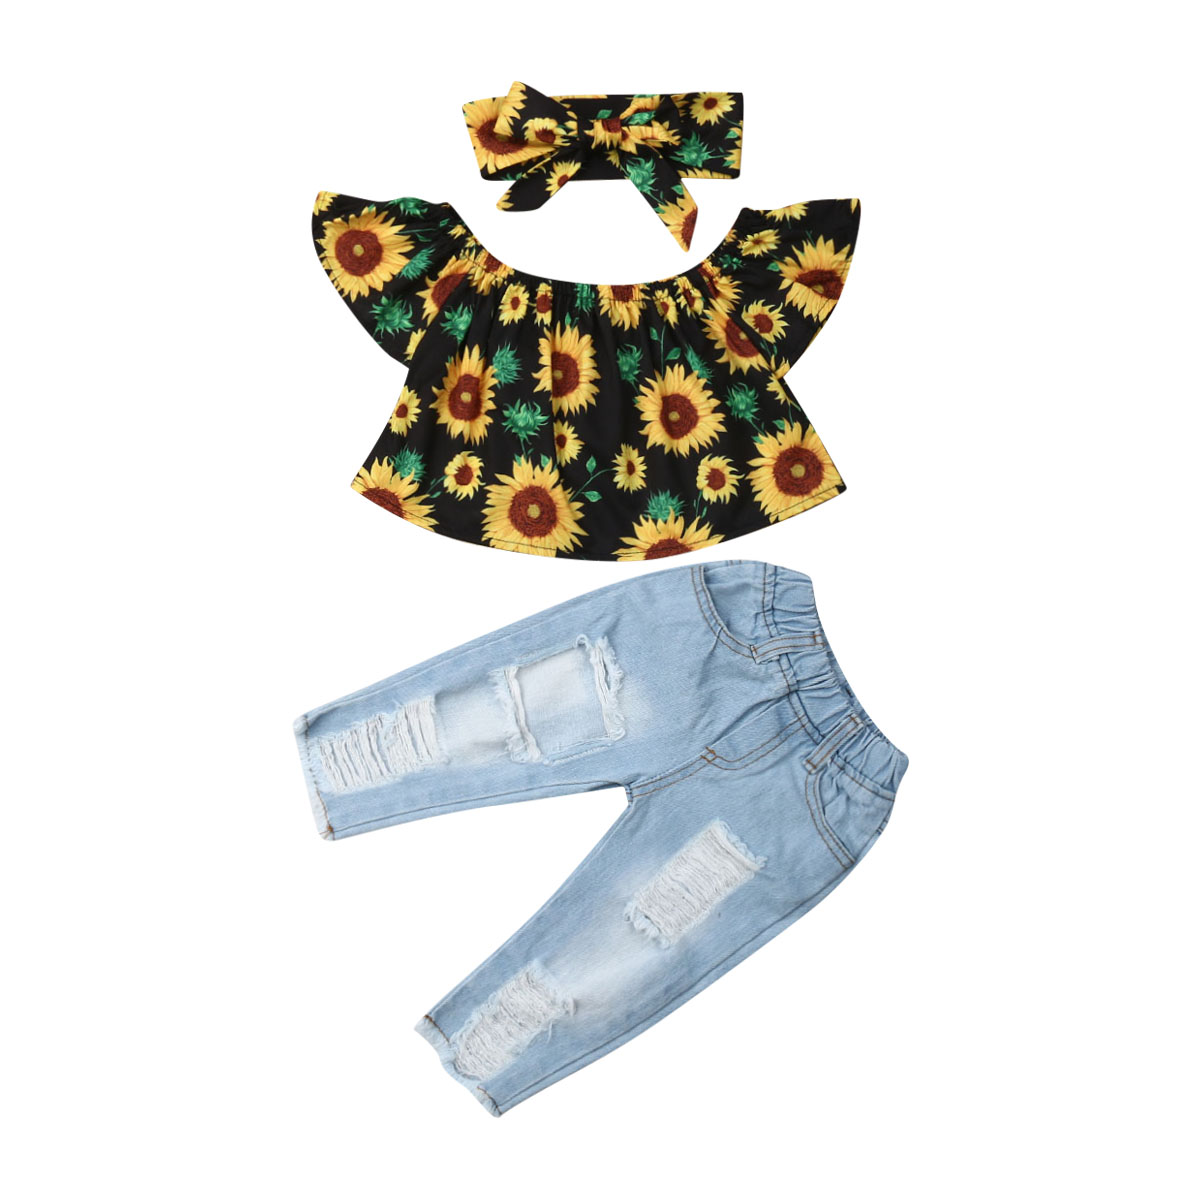 Toddler Outfits Pants Clothes-Girl-Sets Sunflowers Three-Pieces Girls Baby Denim Summer